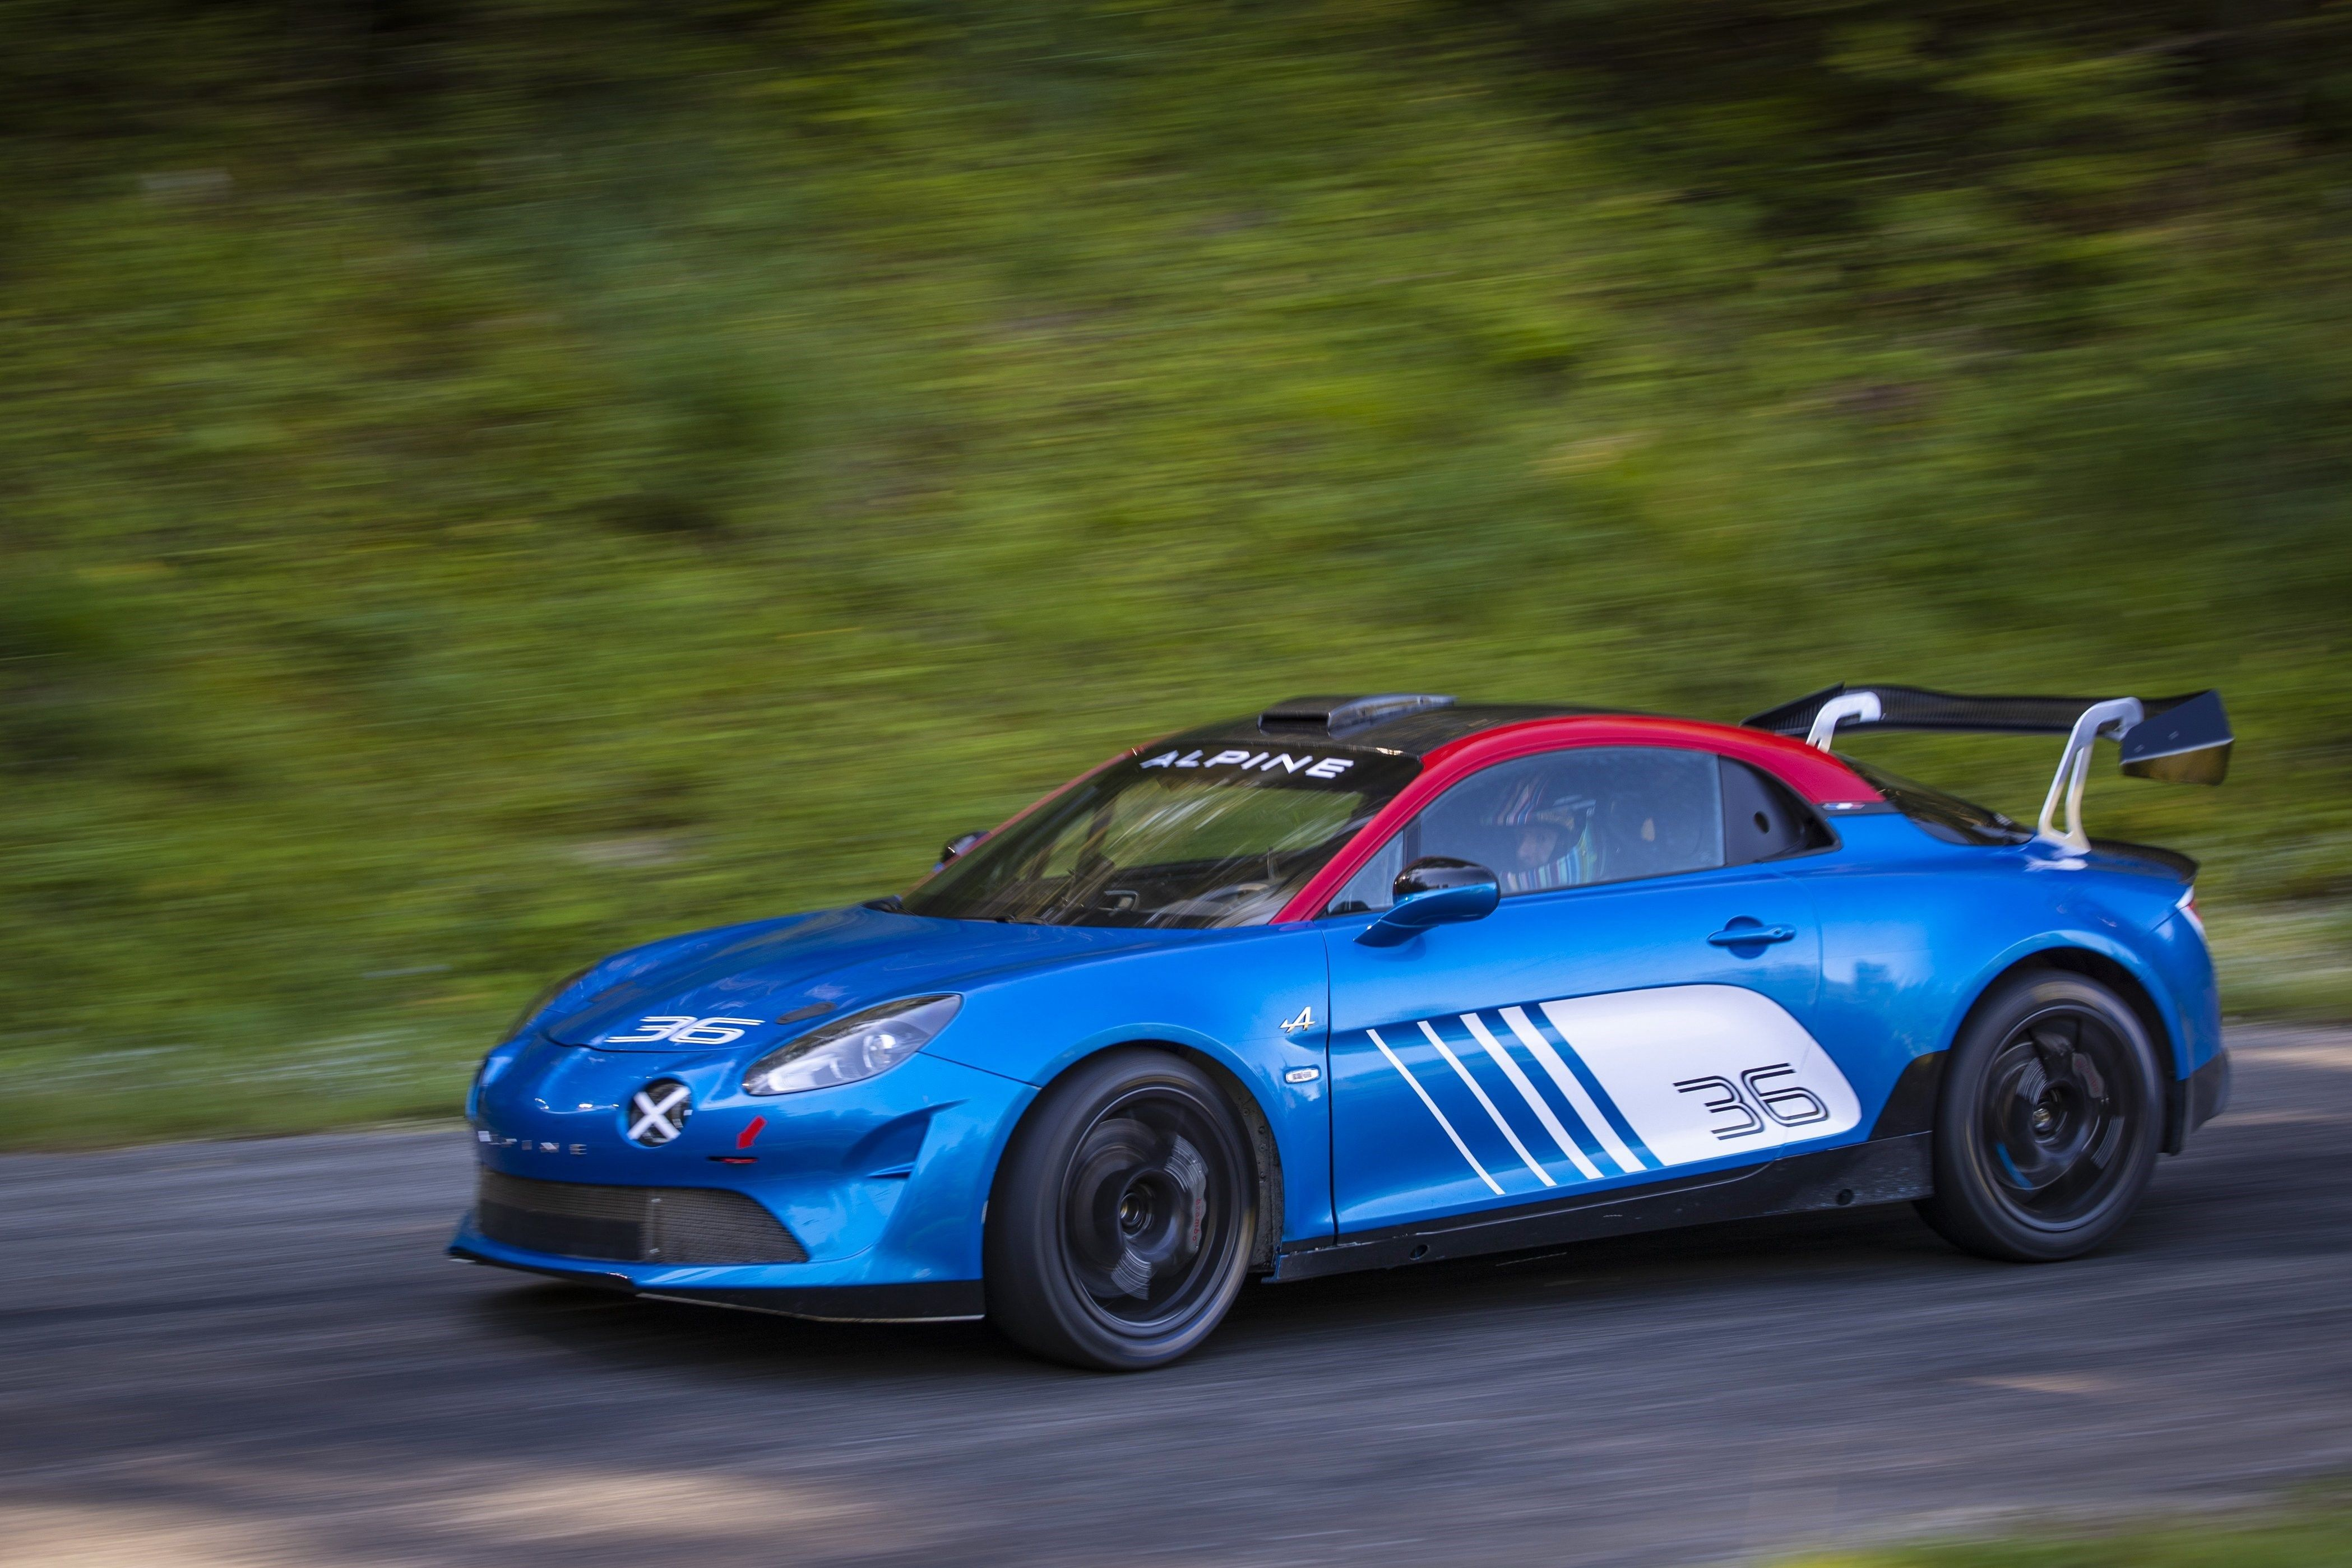 Alpine Is Getting Back to Its Roots With This A110 Rally Car